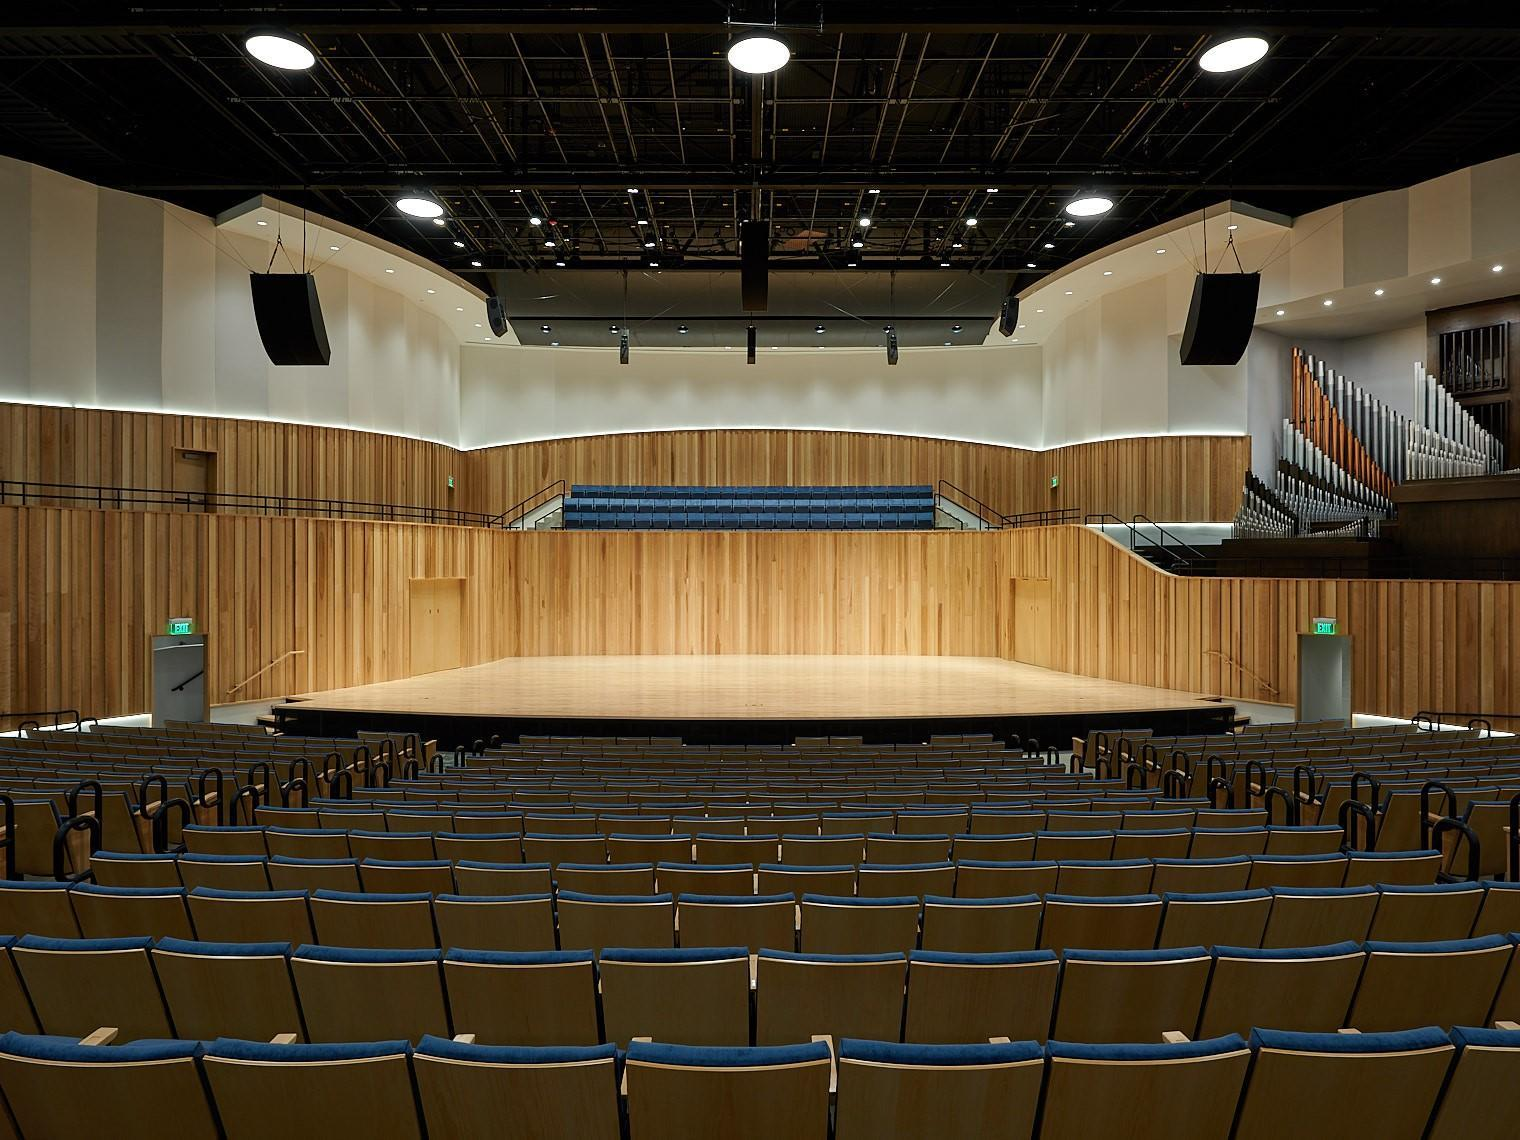 Daines Concert Hall